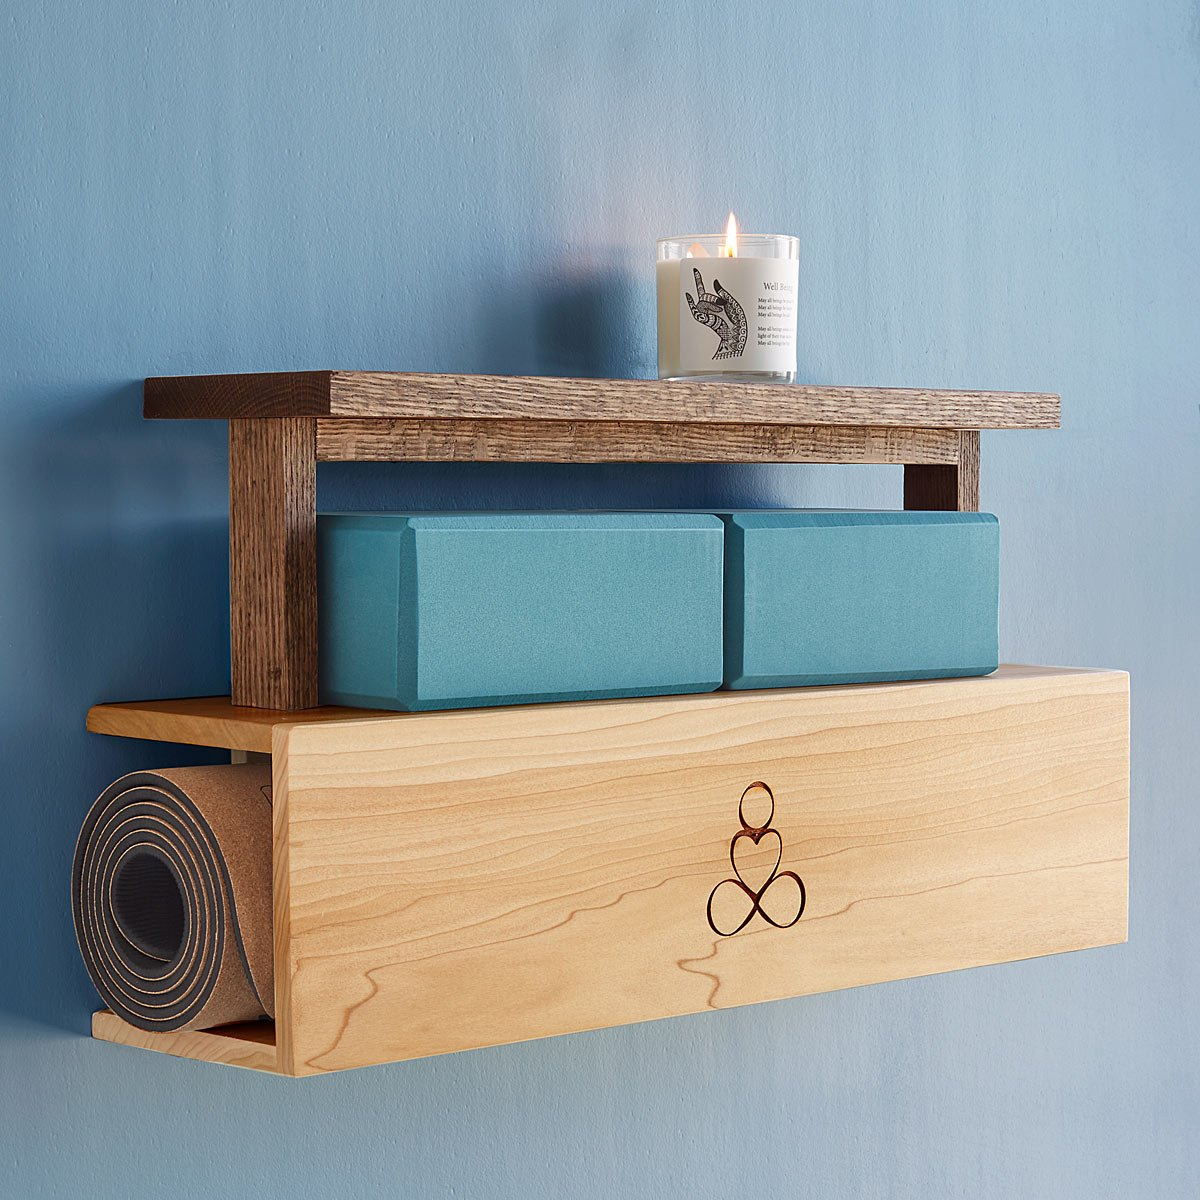 Yoga Mat Storage and Display | UncommonGoods